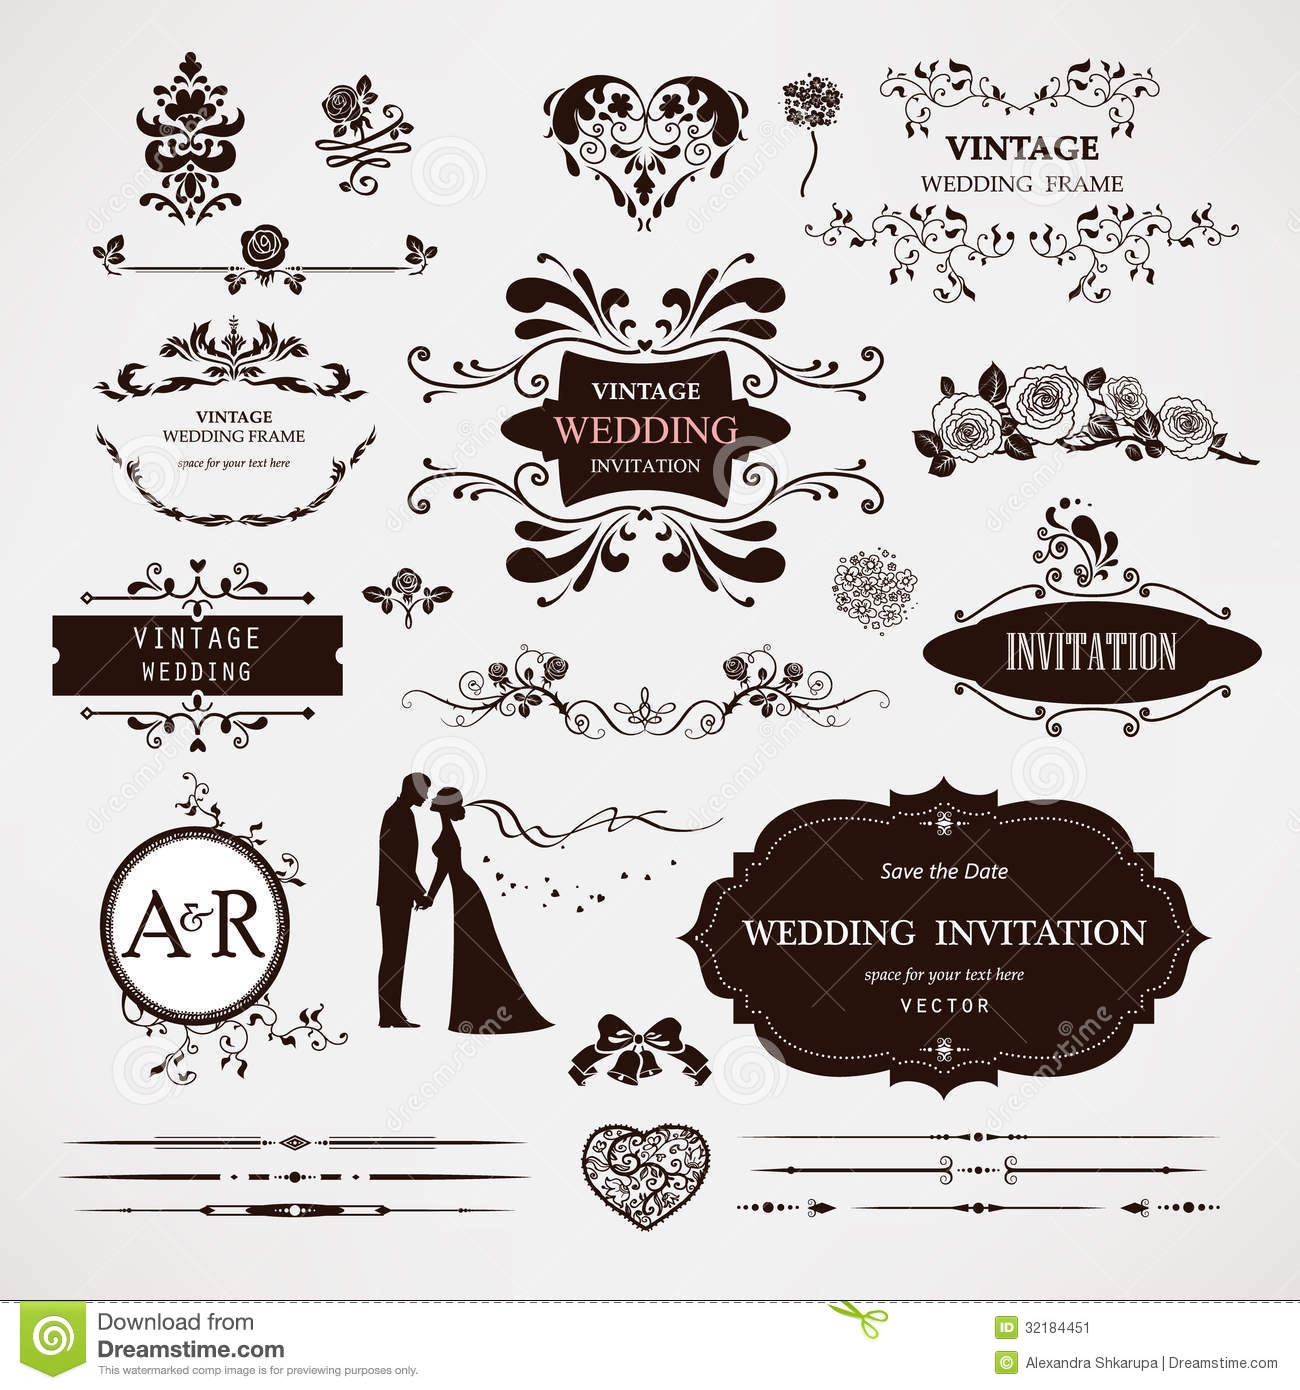 Wedding stage decoration vector image collections wedding dress wedding stage decoration vector images wedding dress decoration wedding stage decoration vector images wedding dress decoration junglespirit Gallery